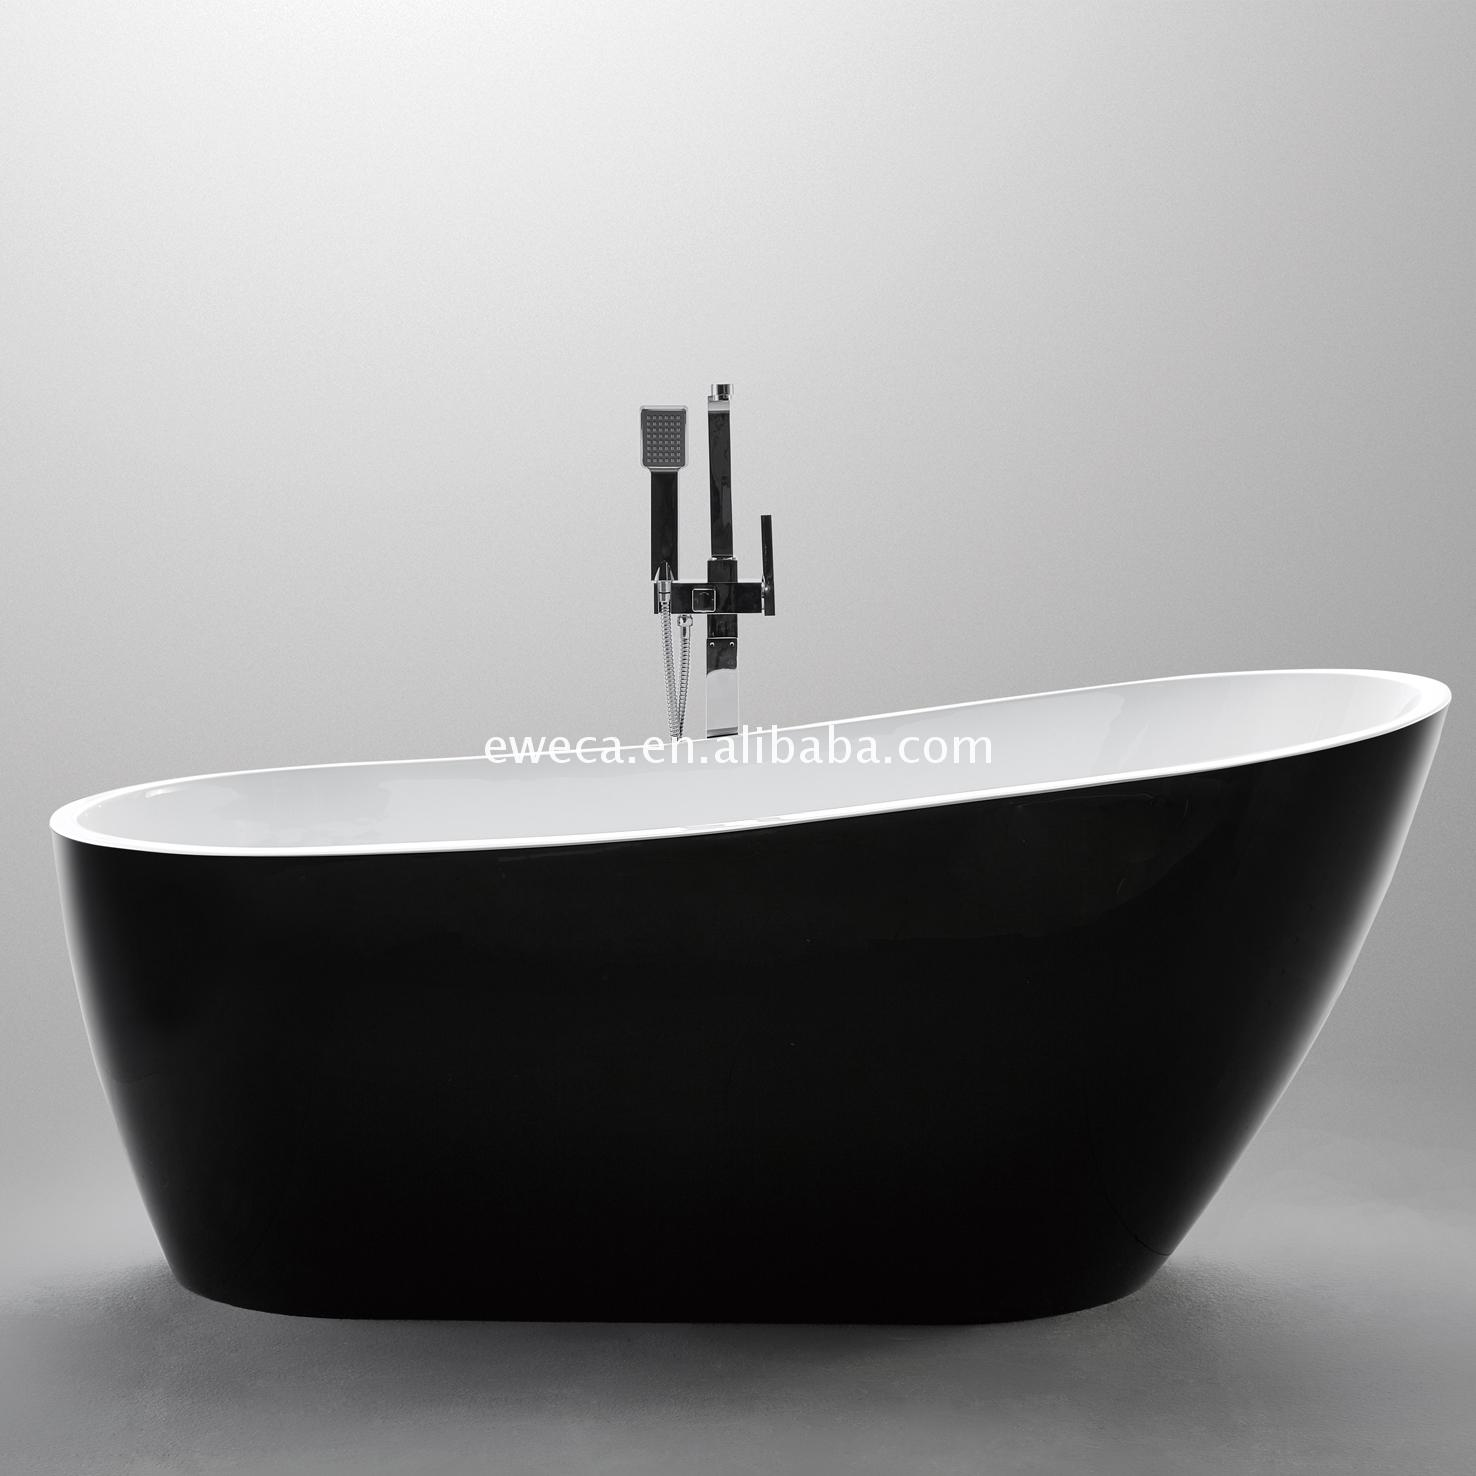 bathtub luxury designer black vetrina nella bath tubs bathtubs italian bathroom